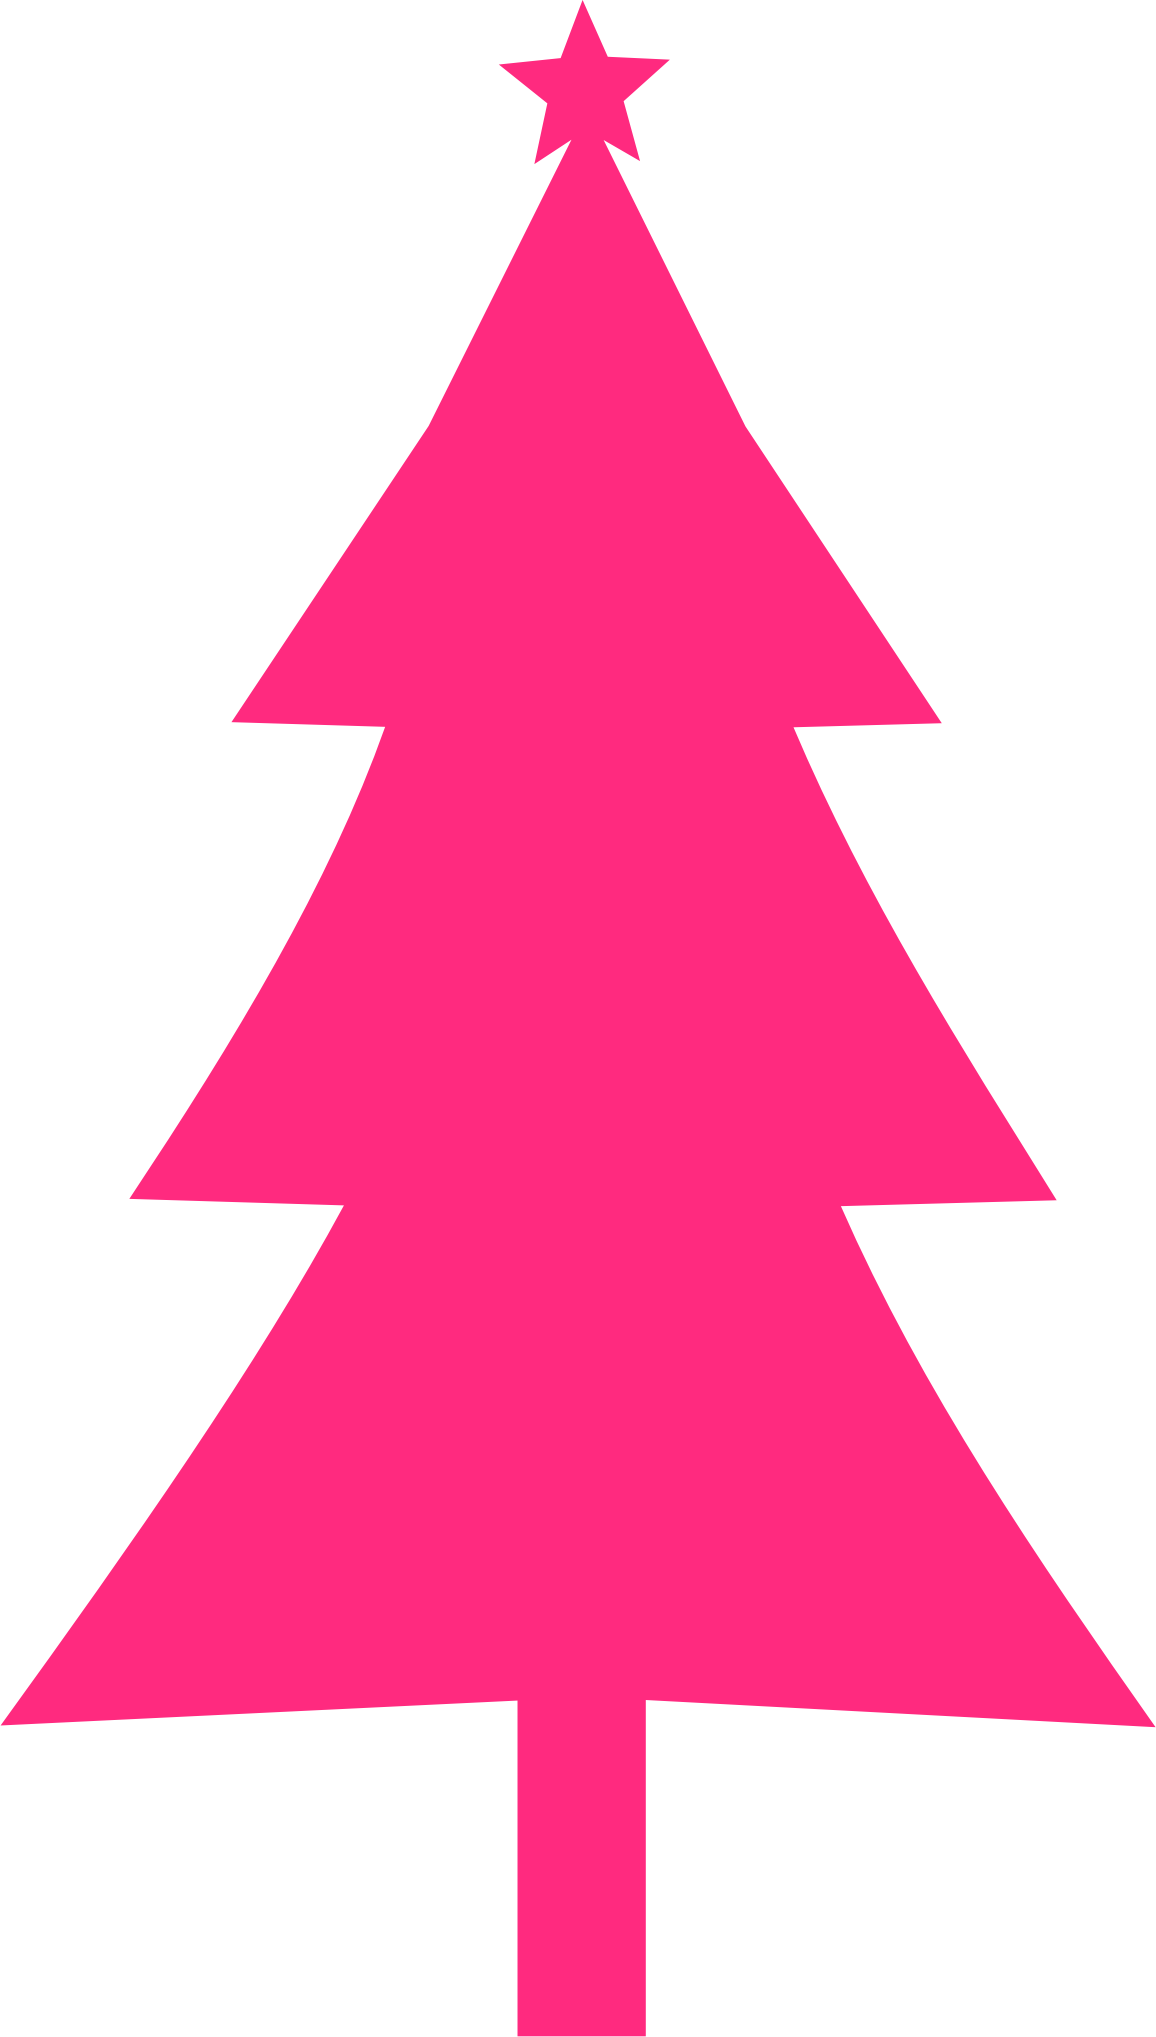 Christmas tree Silhouette by fcocfg